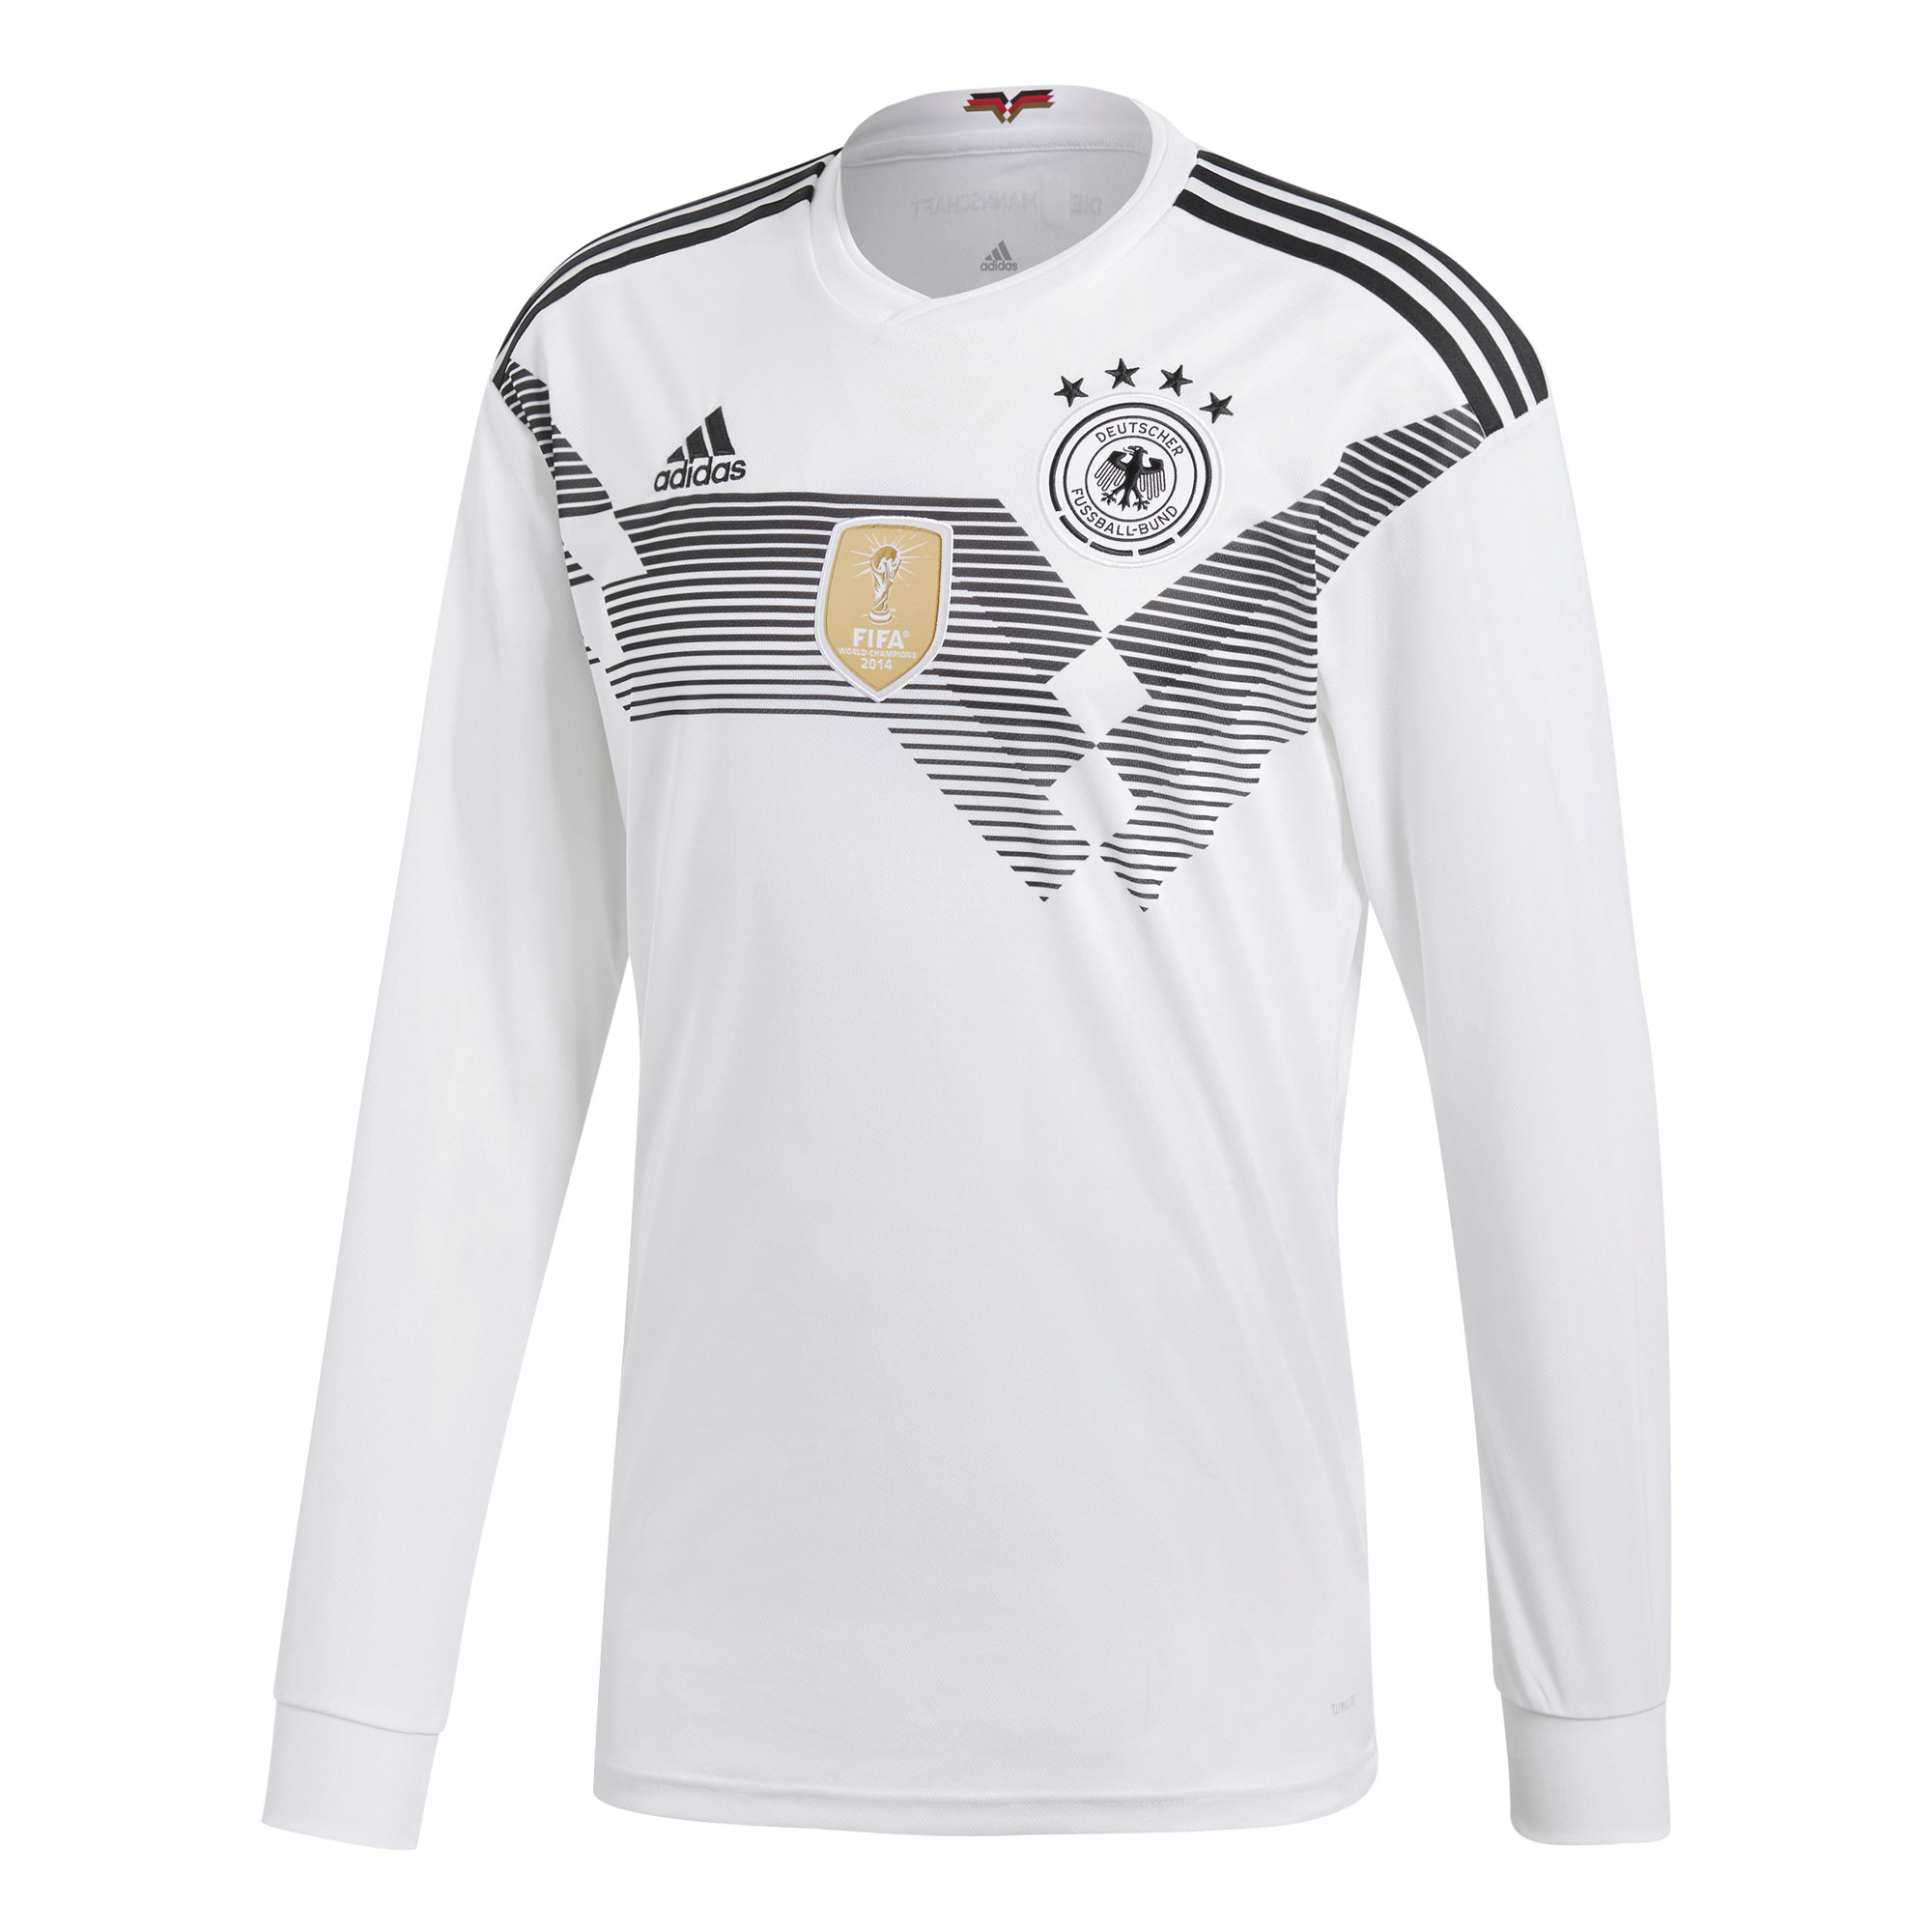 Camiseta Seleccion Alemania Primera ML 2018 Replicas Futbol